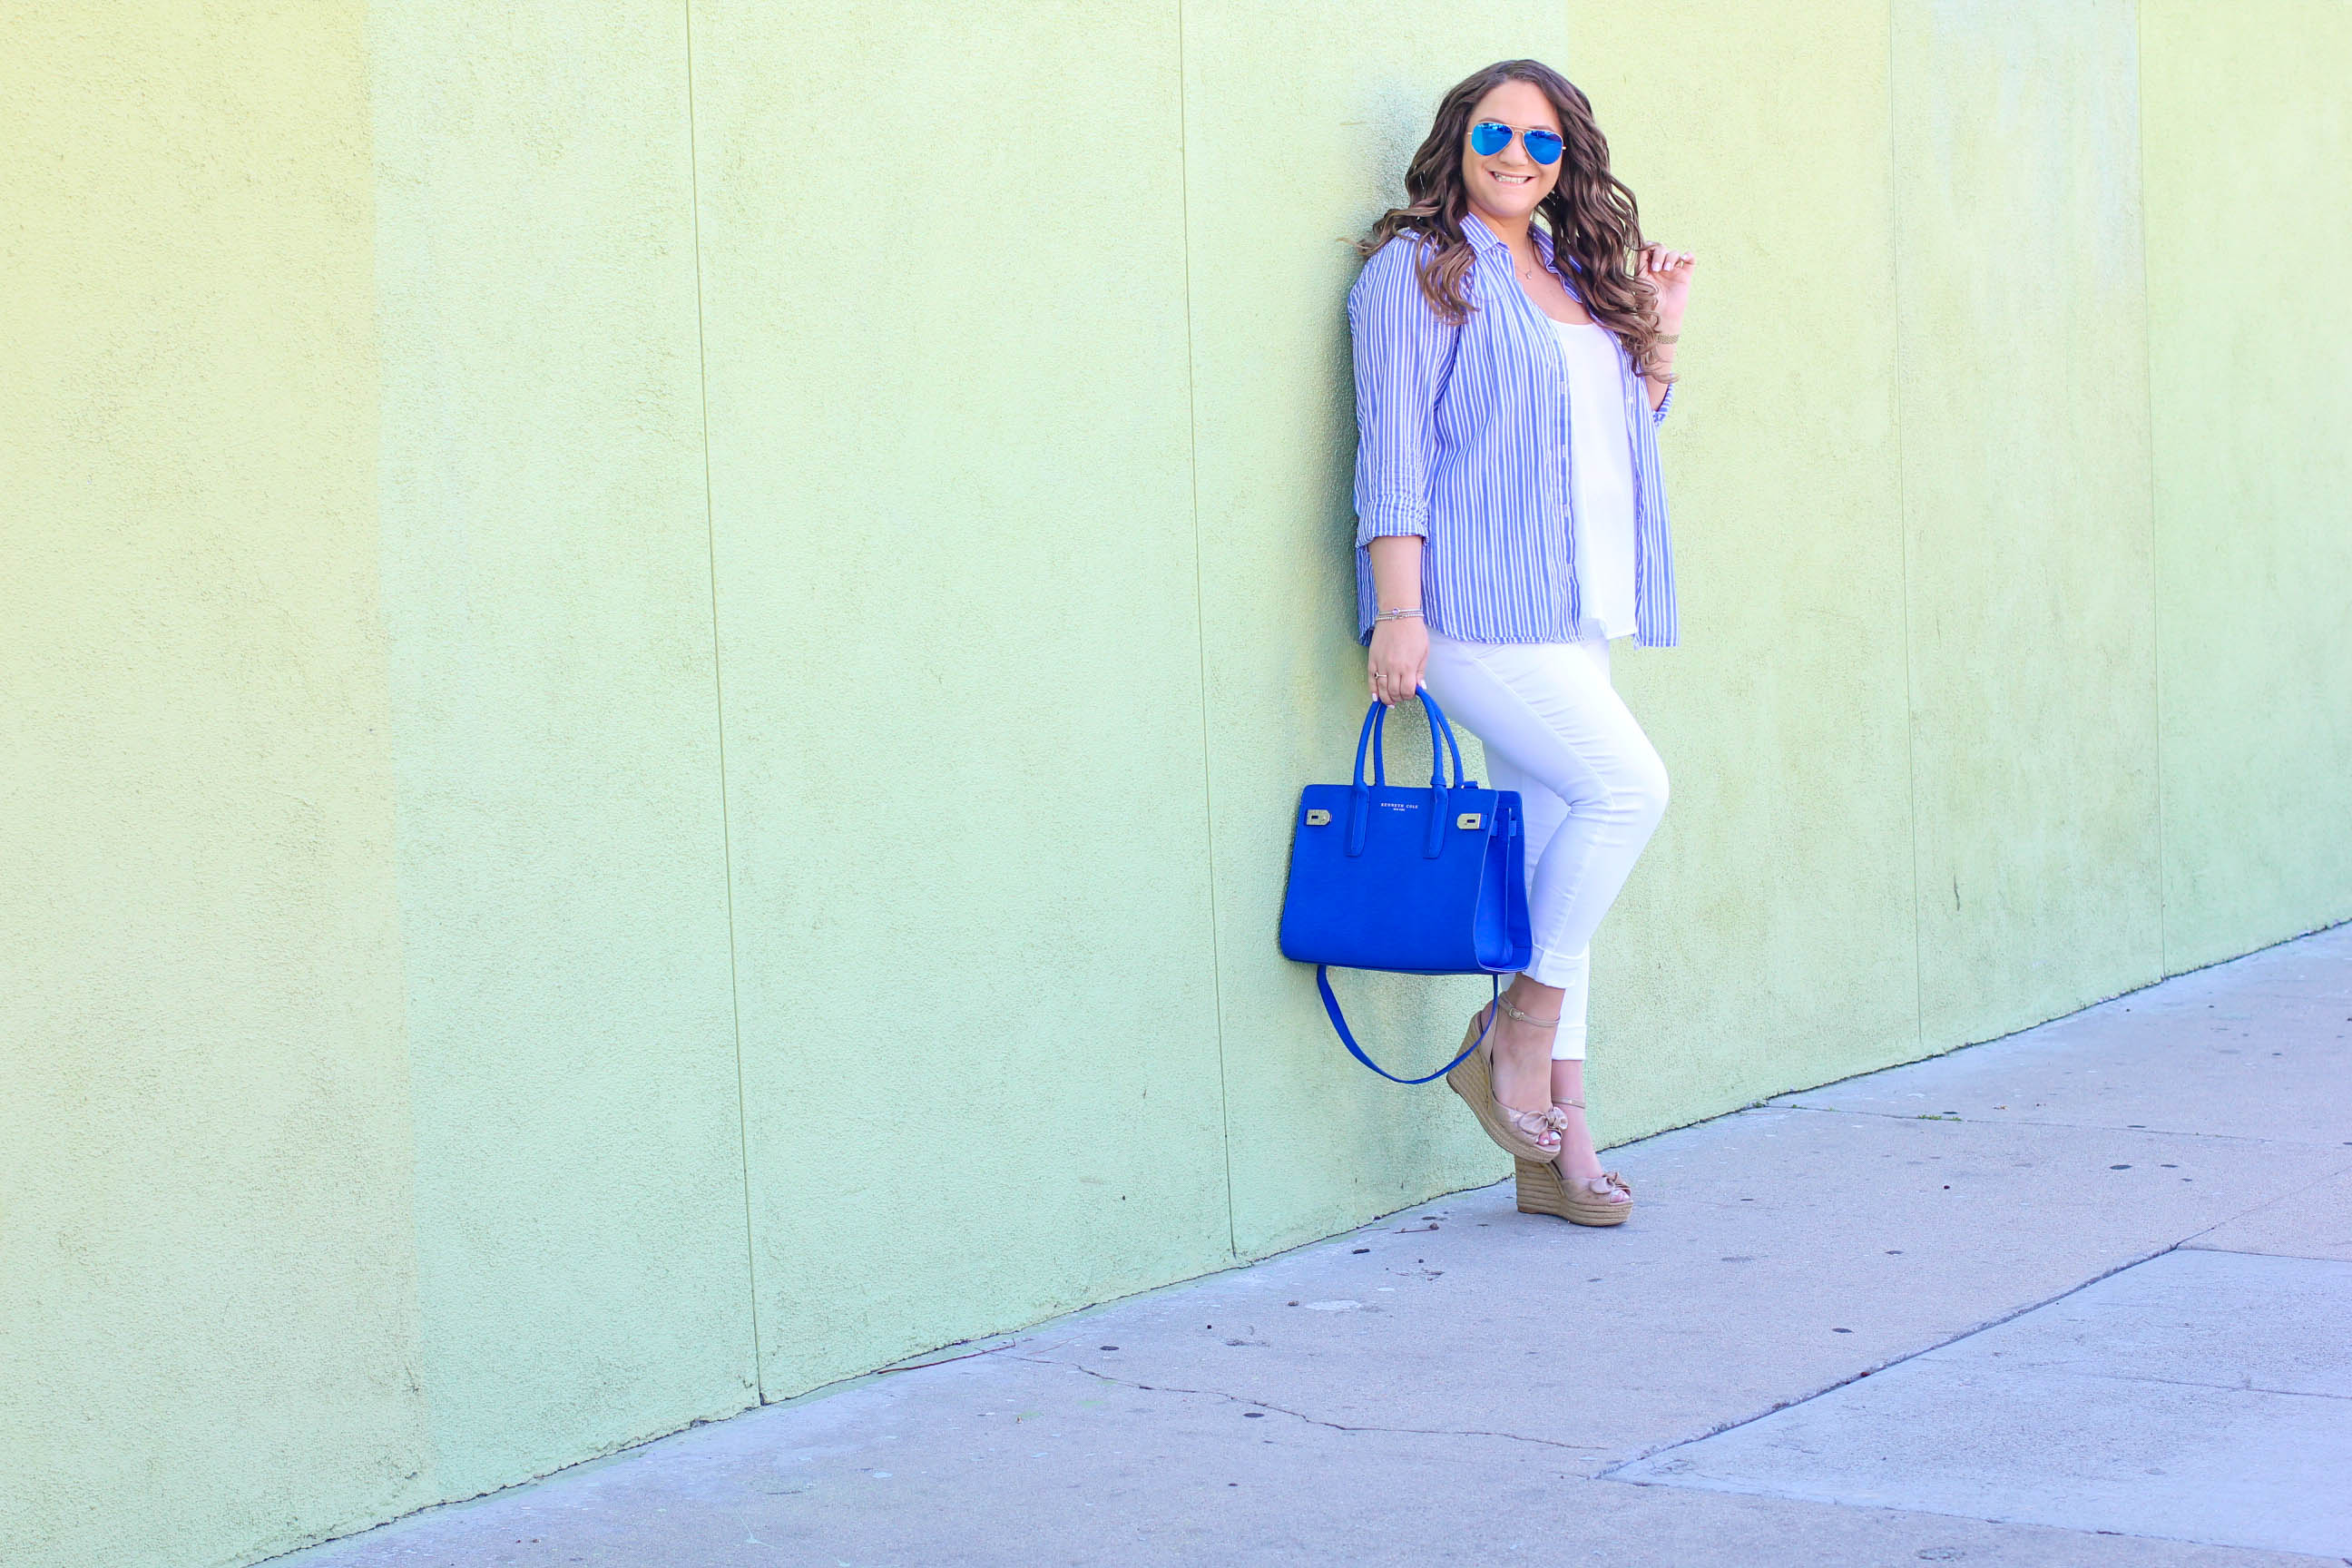 missyonmadison, melissa tierney, old navy, fashion blogger, spring style, spring trends, old navy style, fashion blogger, la blogger, neo nauticaul, nautical, white skinny jeans, white jeans, cobalt blue satchel, pin stripe shirt, striped button down, style blogger, espadrille wedges, style goals, old navy rockstar jeans,